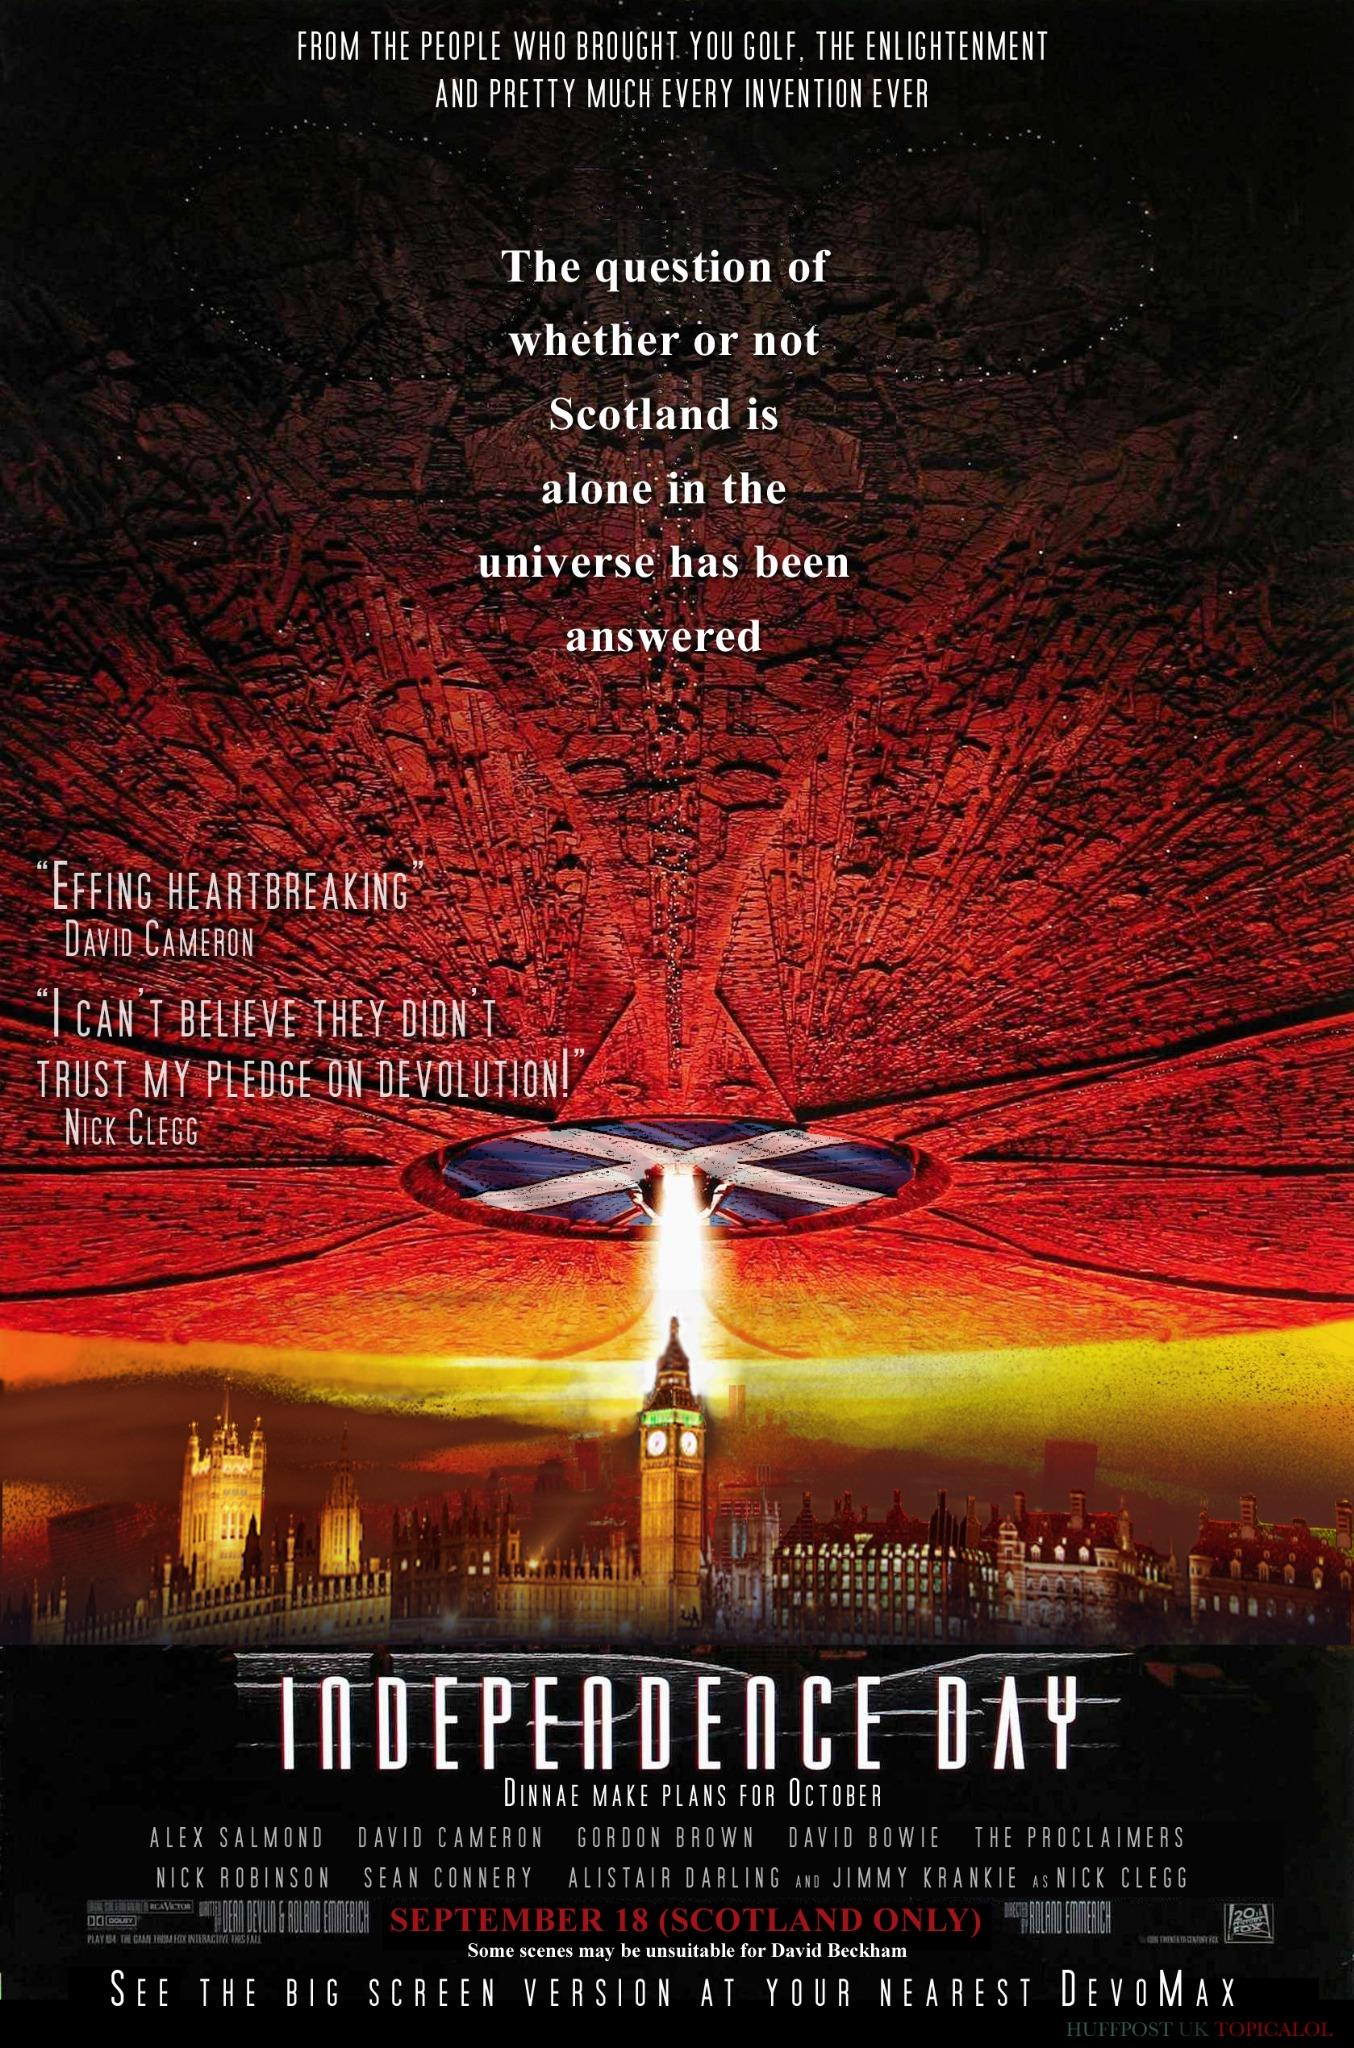 Independence Day: the British remake #indyref  (done for @HuffPostUKCom)  http://t.co/dLNusFLk4C http://t.co/hdtfjgxh5H